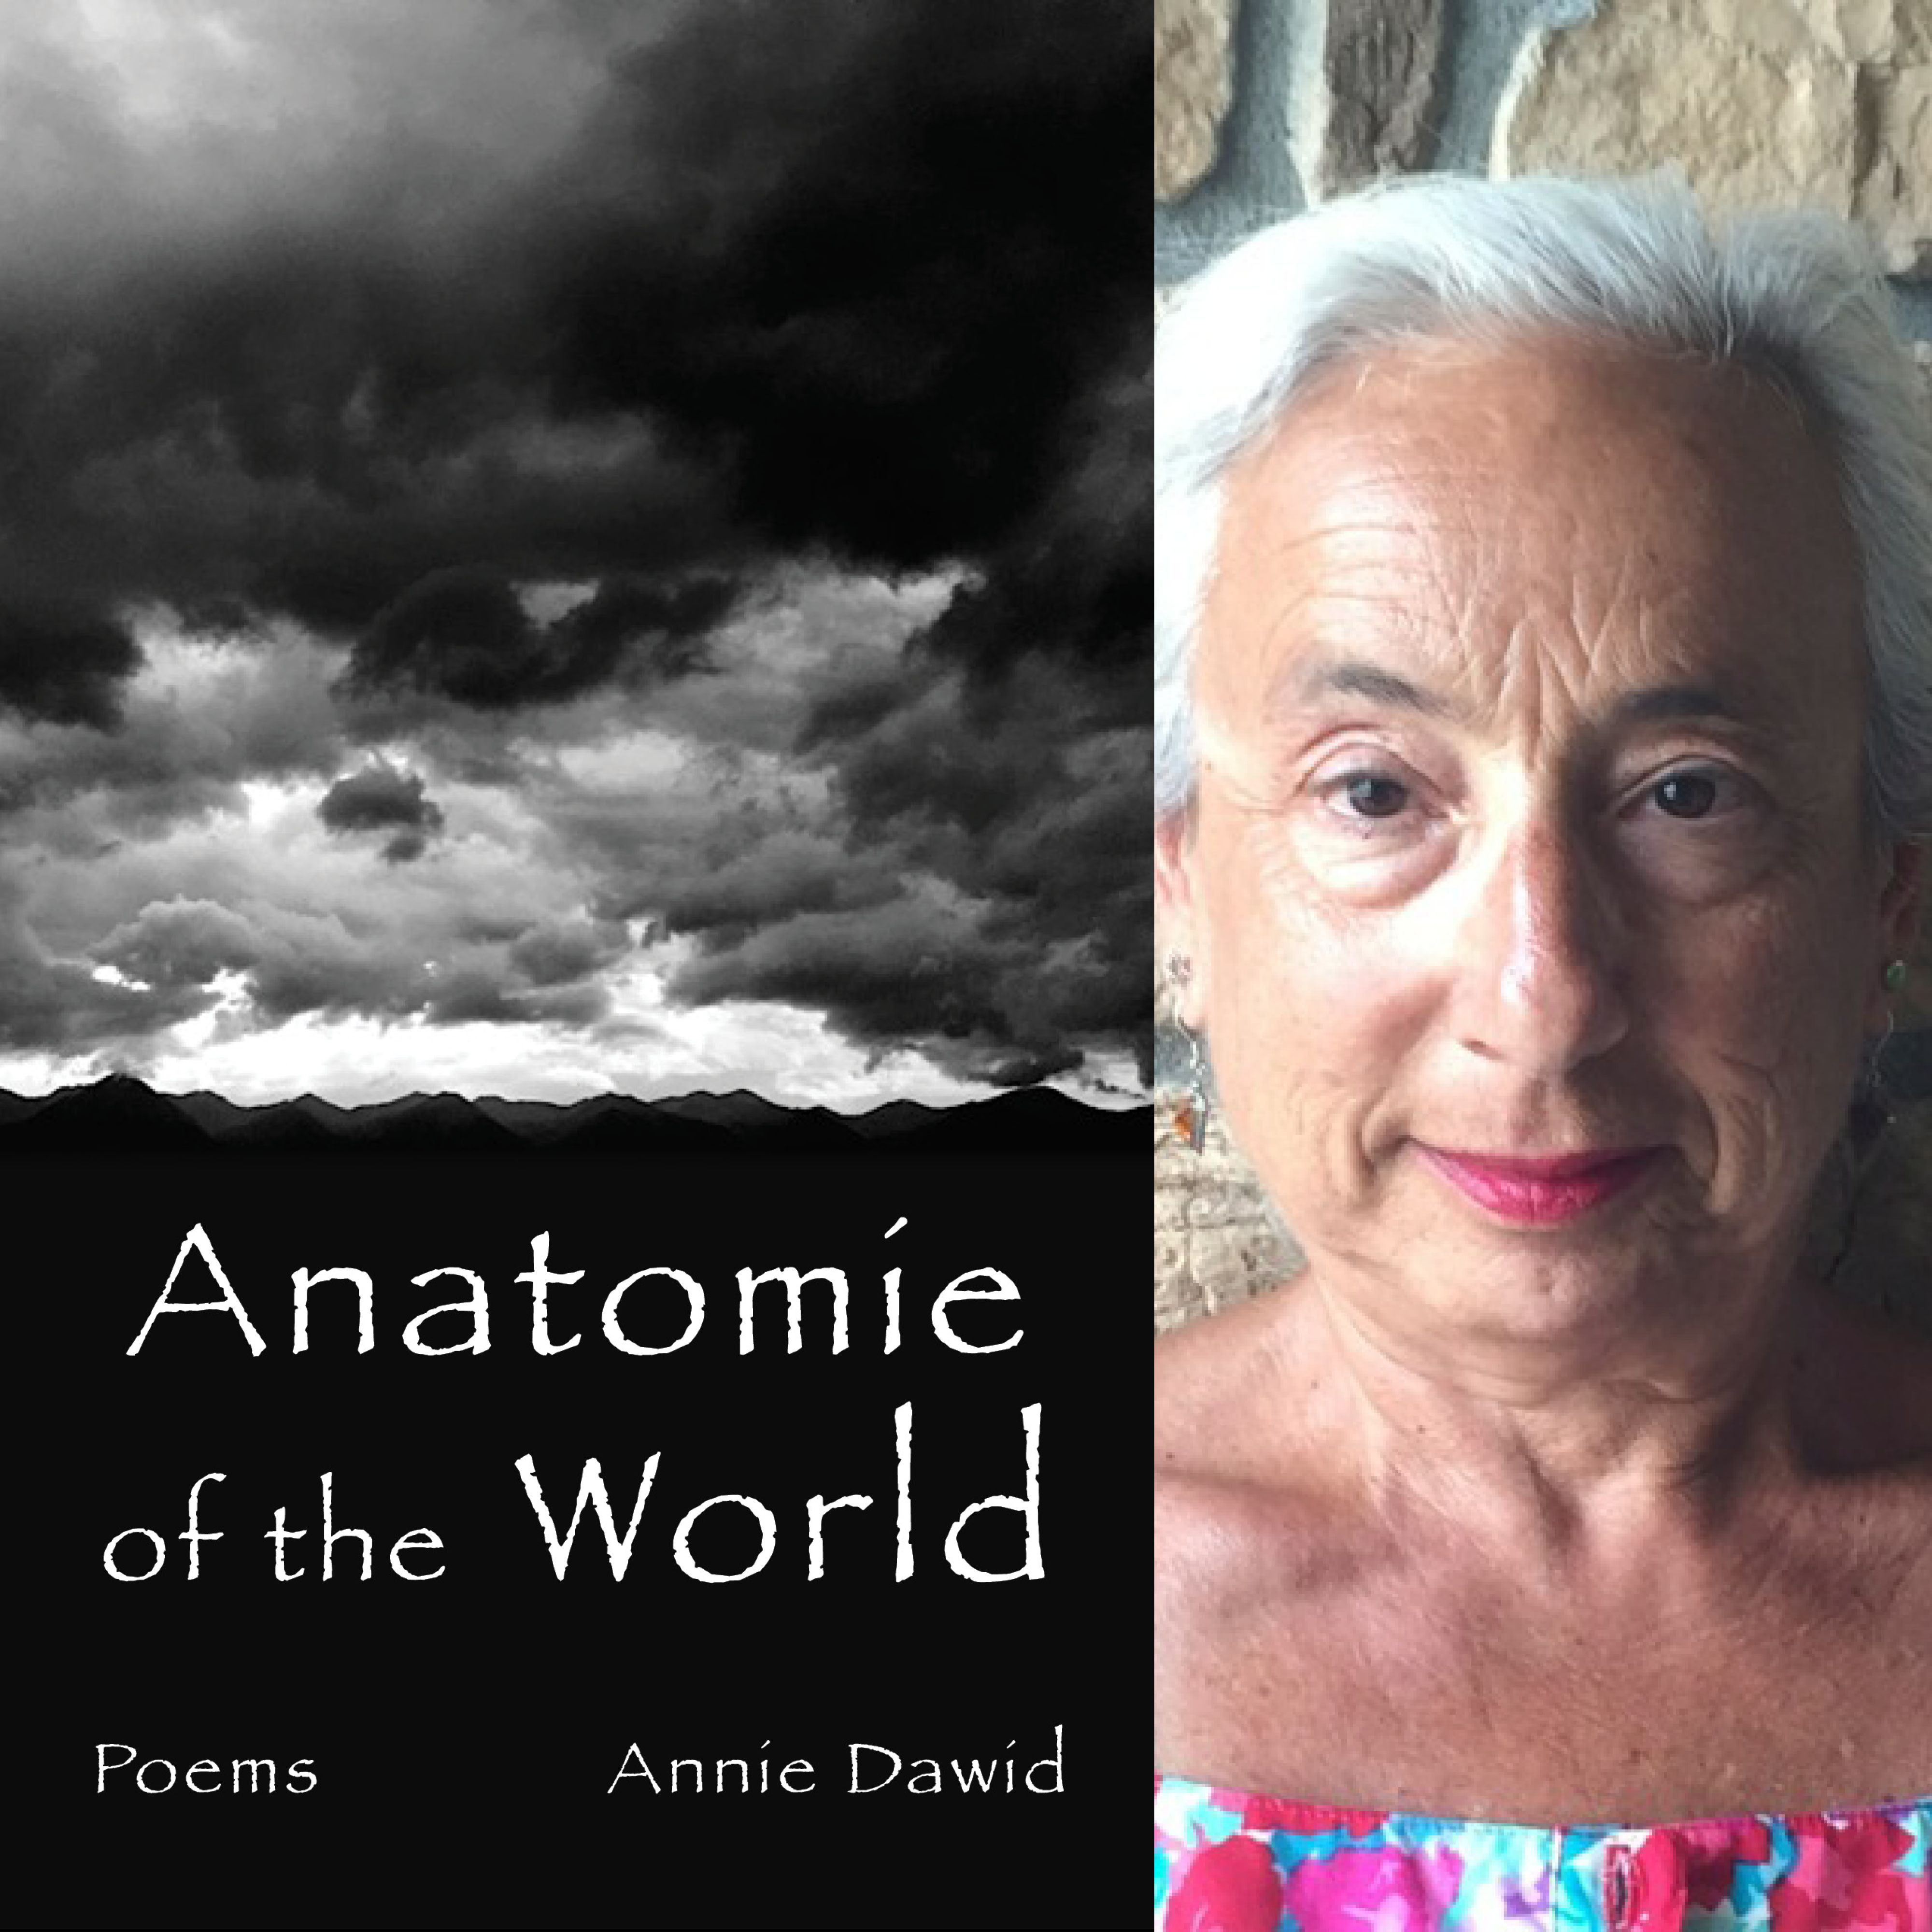 FINISHING LINE PRESS BOOK OF THE DAY: Anatomie of the World by Annie Dawid  $13.99, paper  RESERVE YOUR COPY TODAY  PREORDER PURCHASE SHIPS FEB. 24, 2017  https://www.finishinglinepress.com/product/anatomie-of-the-world-by-annie-dawid/